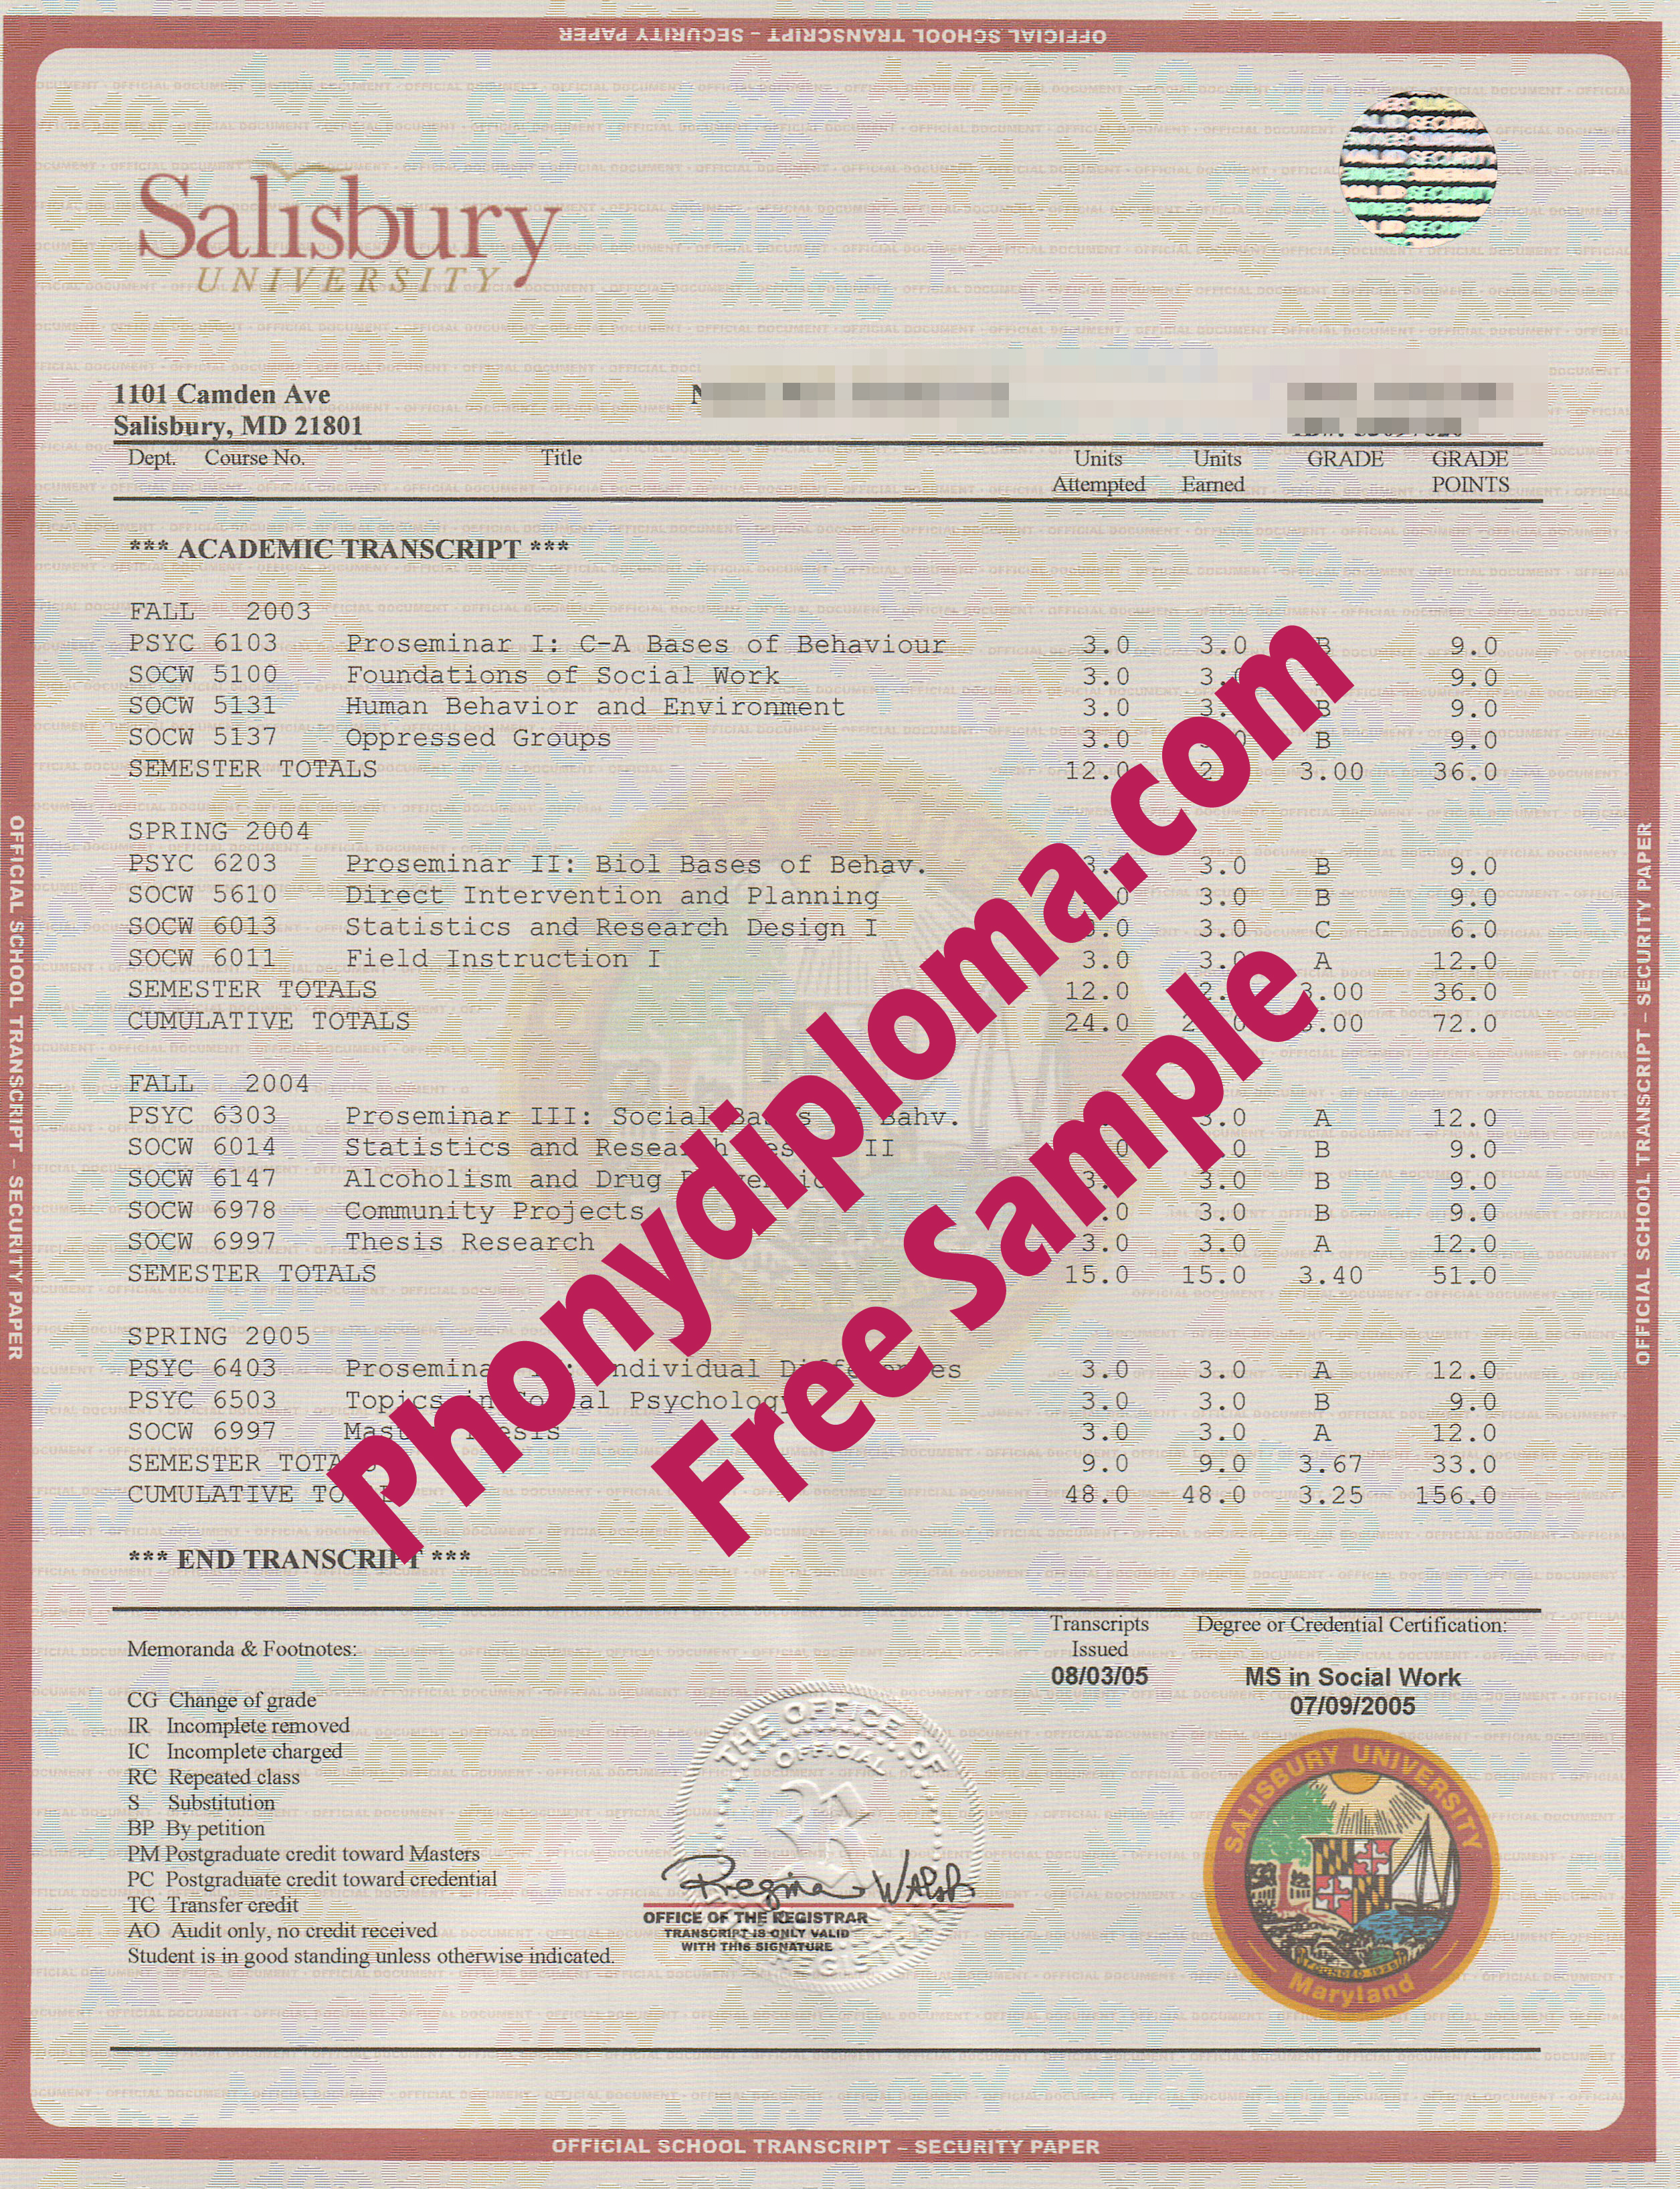 Salisbury University House Design Transcripts Free Sample From Phonydiploma